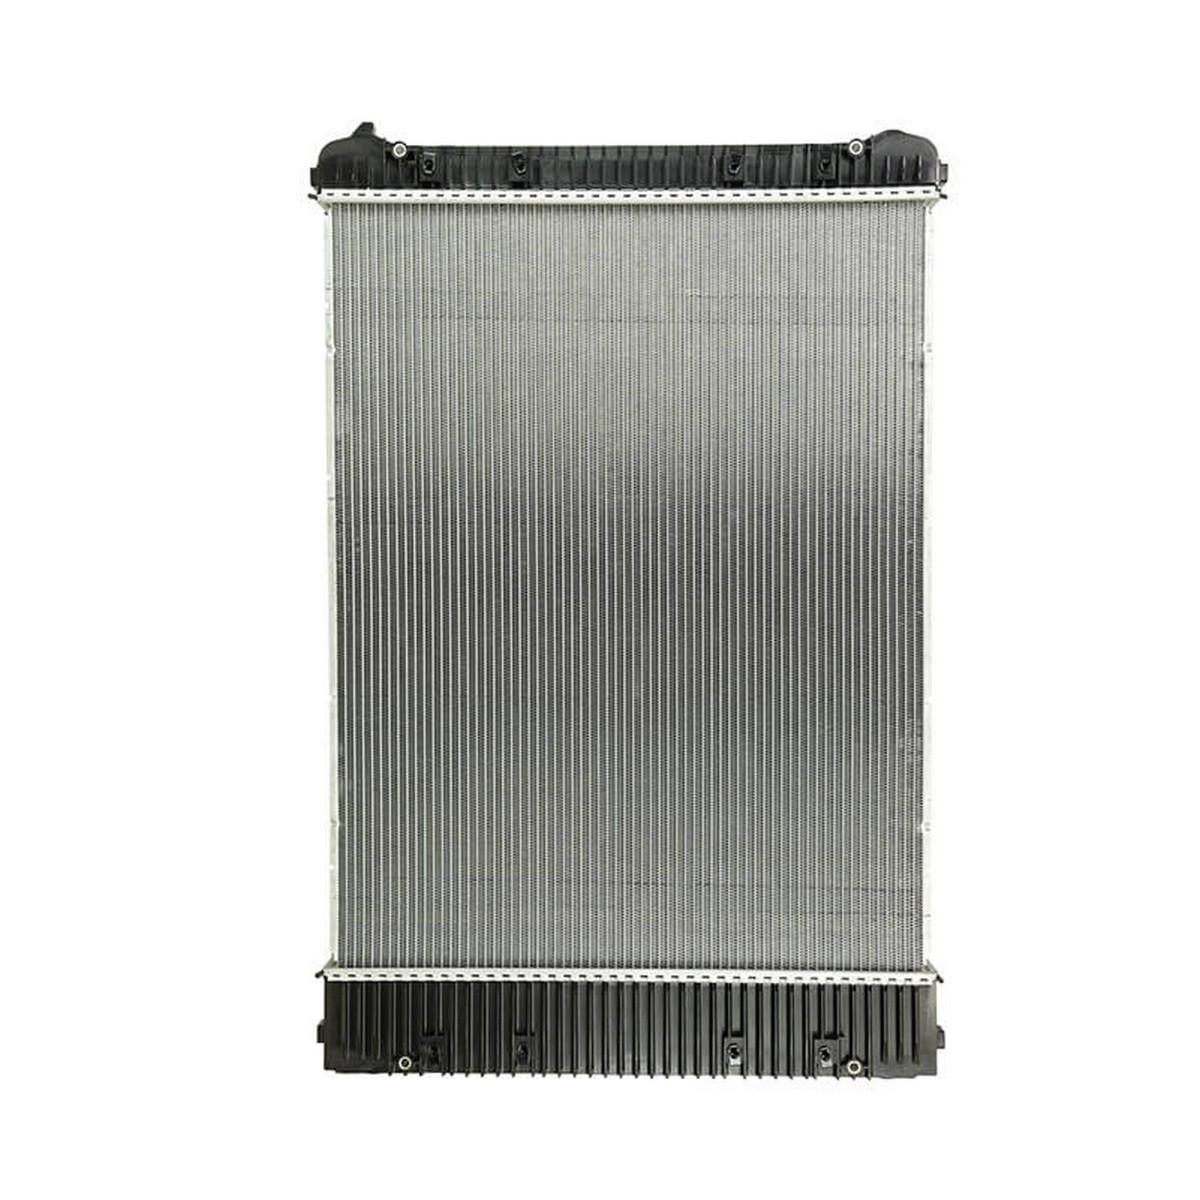 freightliner m2 106 bsuiness class 03 07 radiator oem bhte8295 3